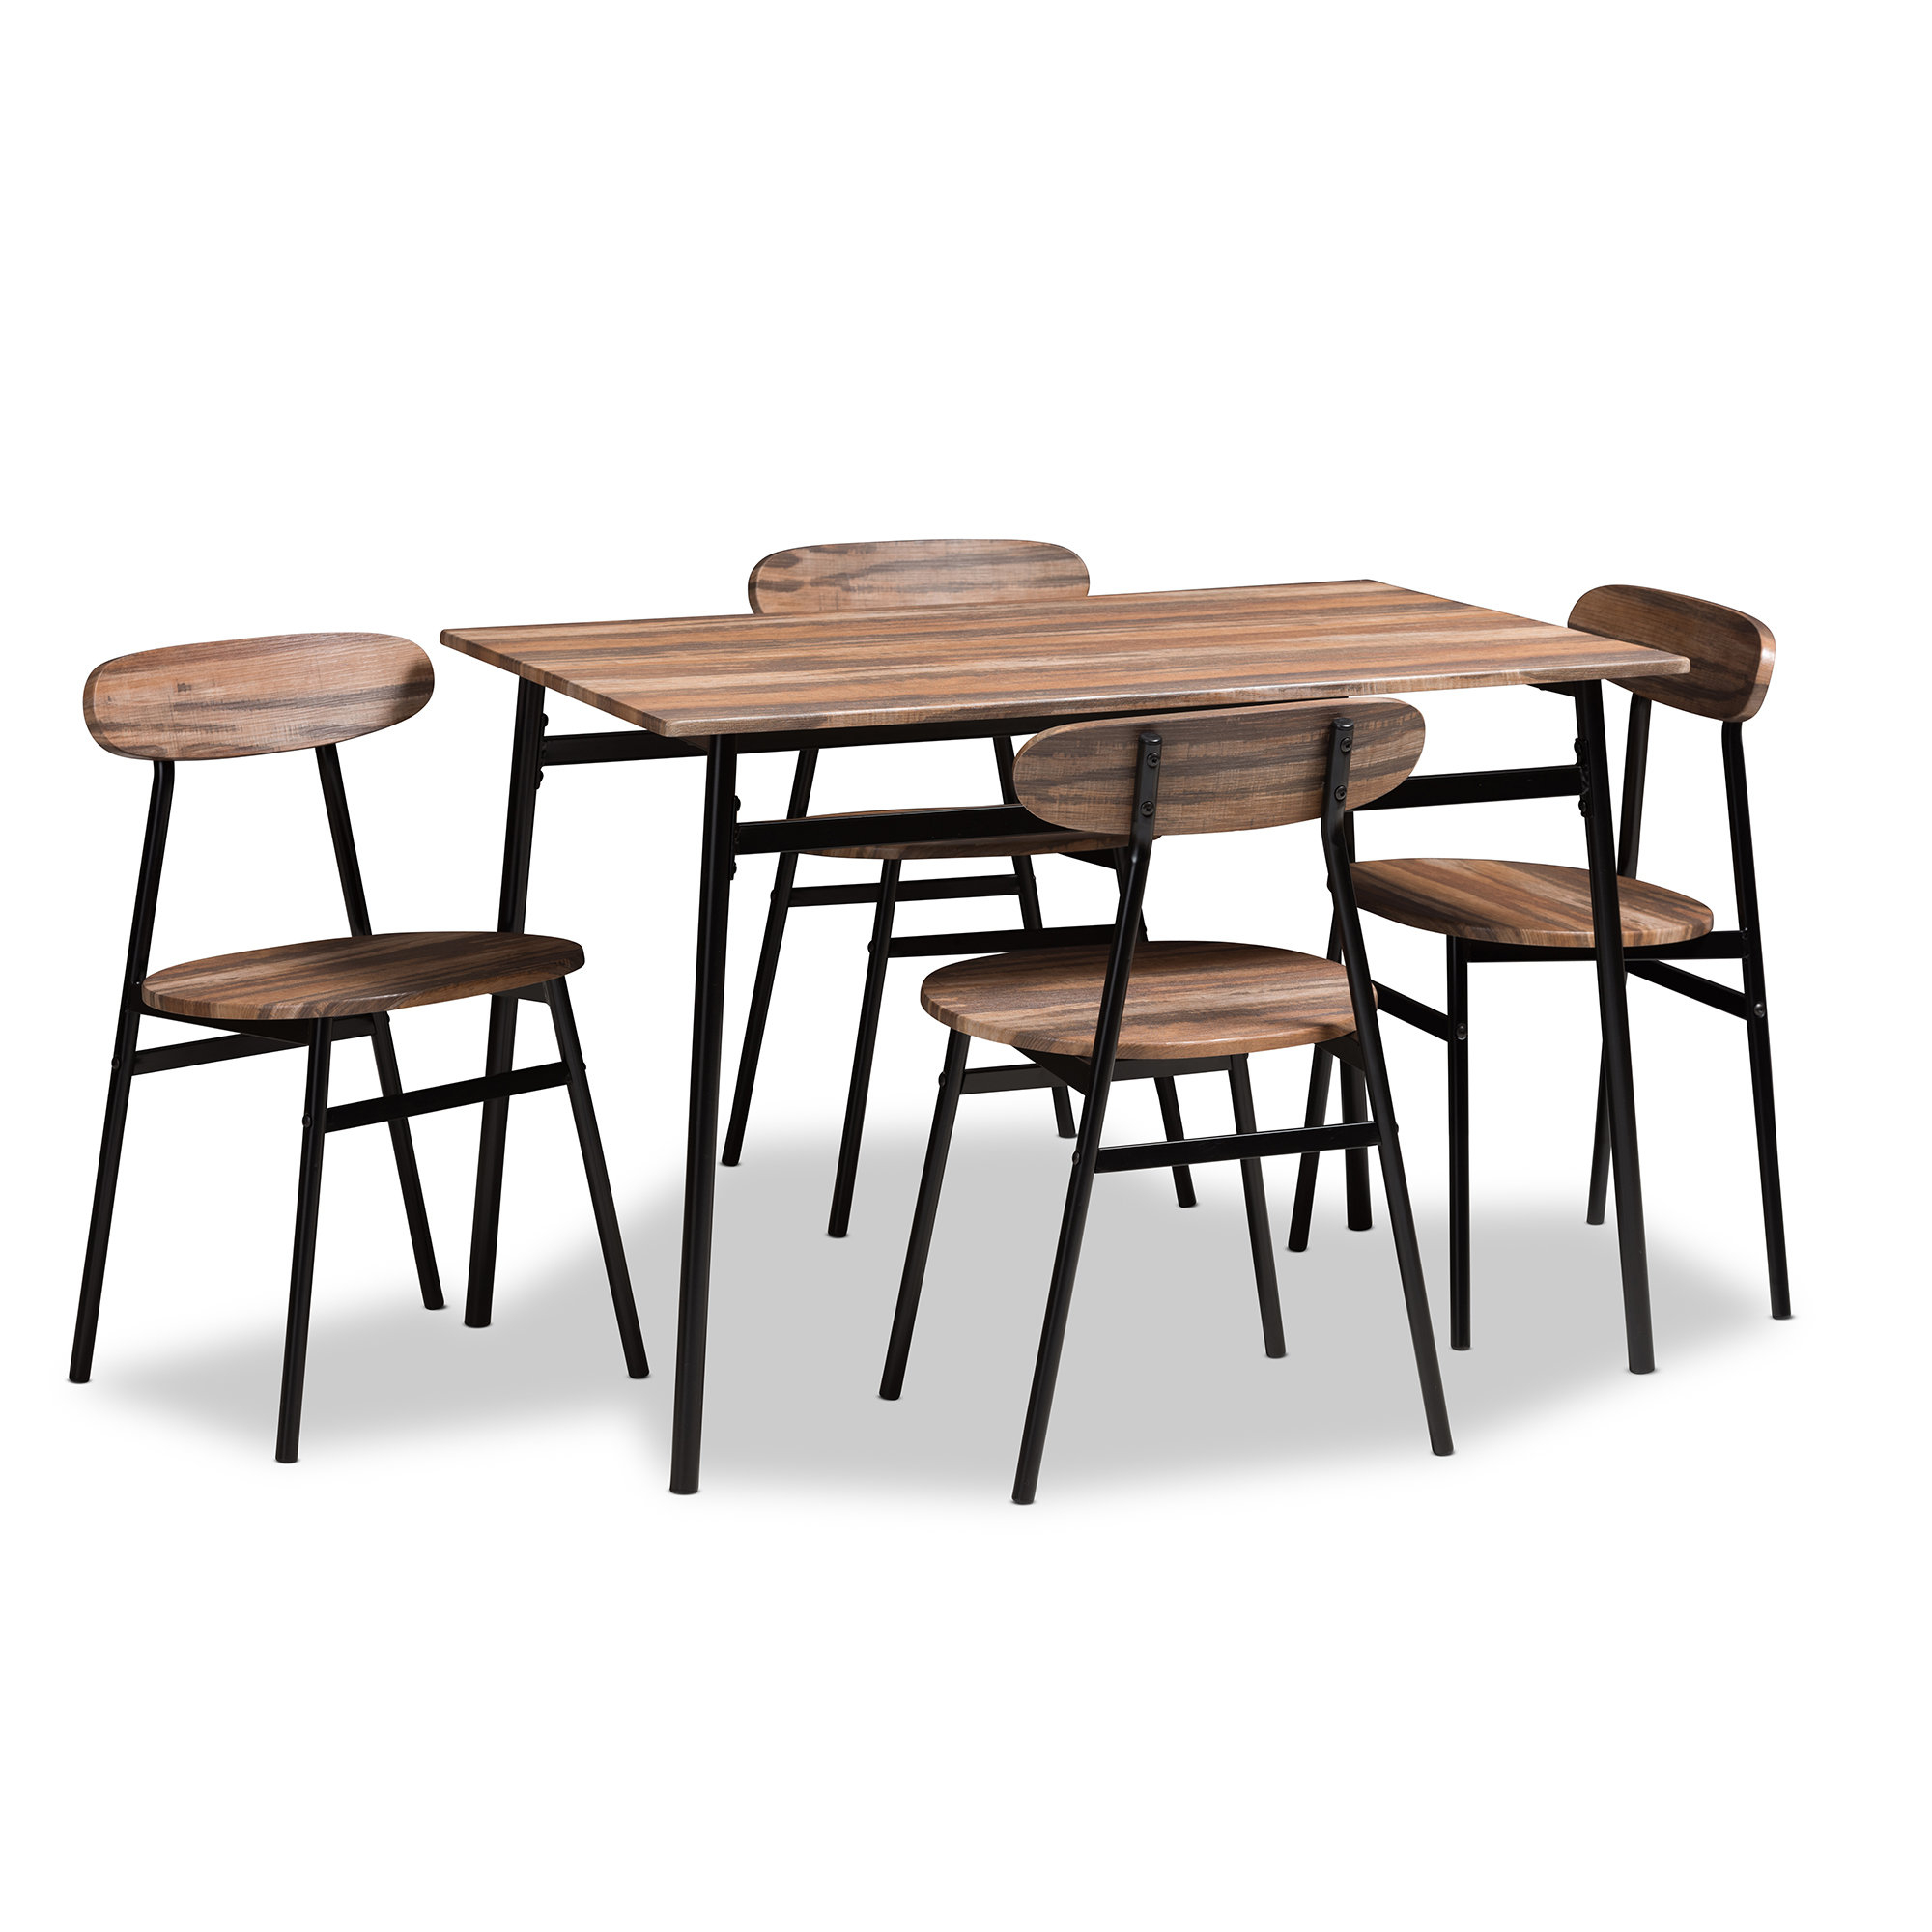 Joss & Main For Popular Askern 3 Piece Counter Height Dining Sets (Set Of 3) (View 12 of 25)